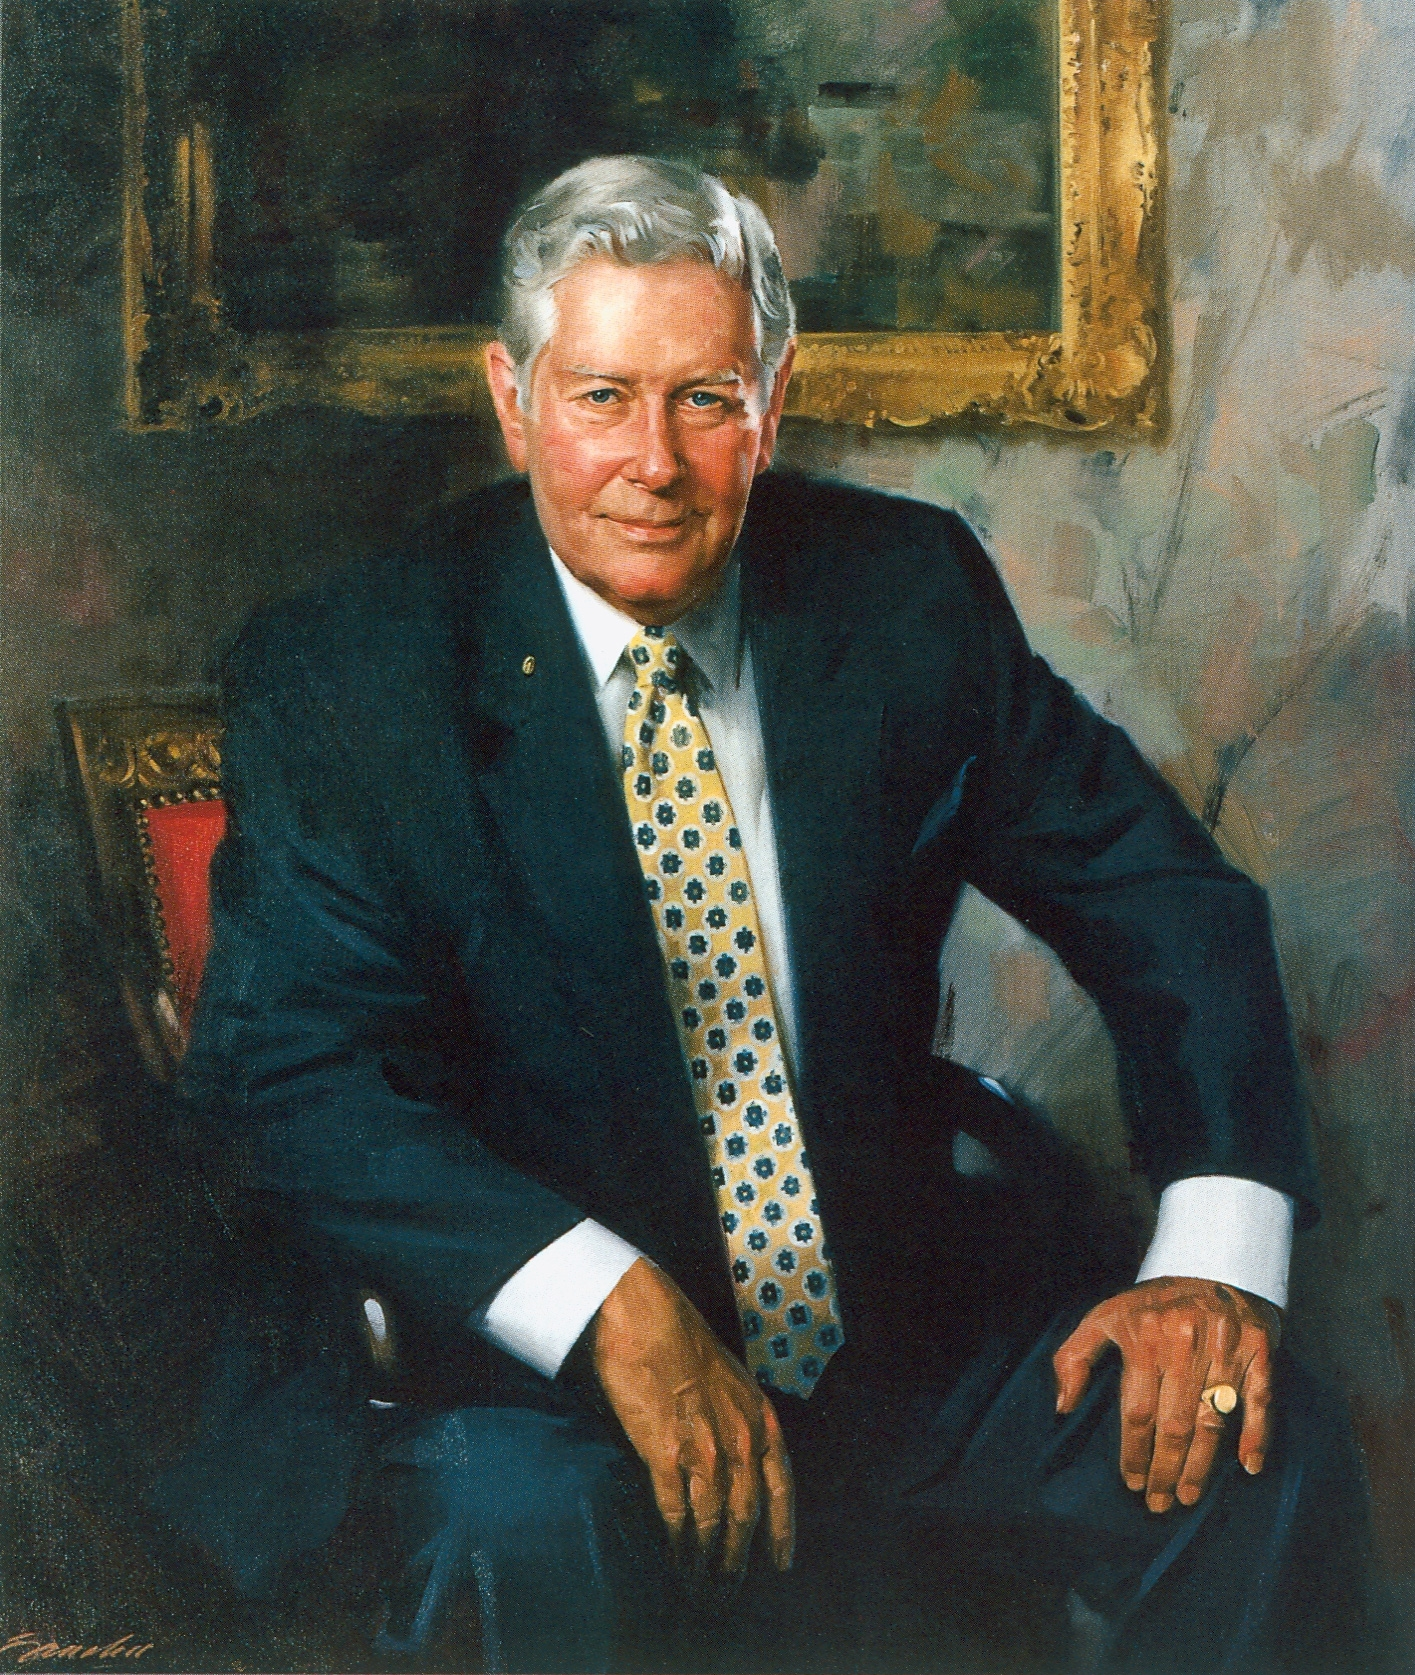 Portrait of Lewis R. Holding, retired Chairman and CEO